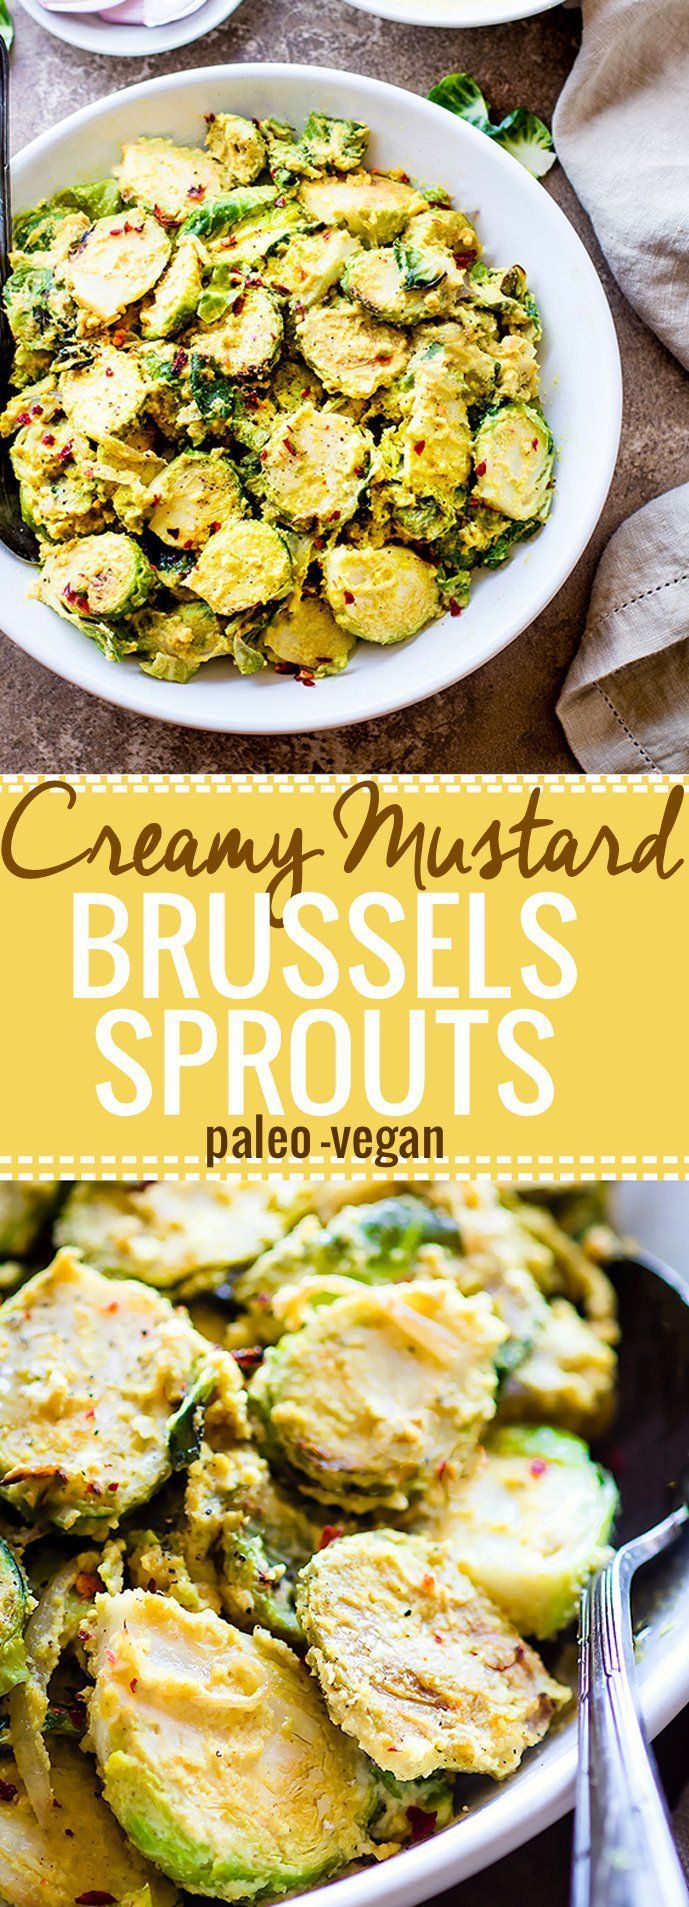 Pan Fried Creamy Mustard Brussels Sprouts Salad! A paleo Brussel Sprouts…